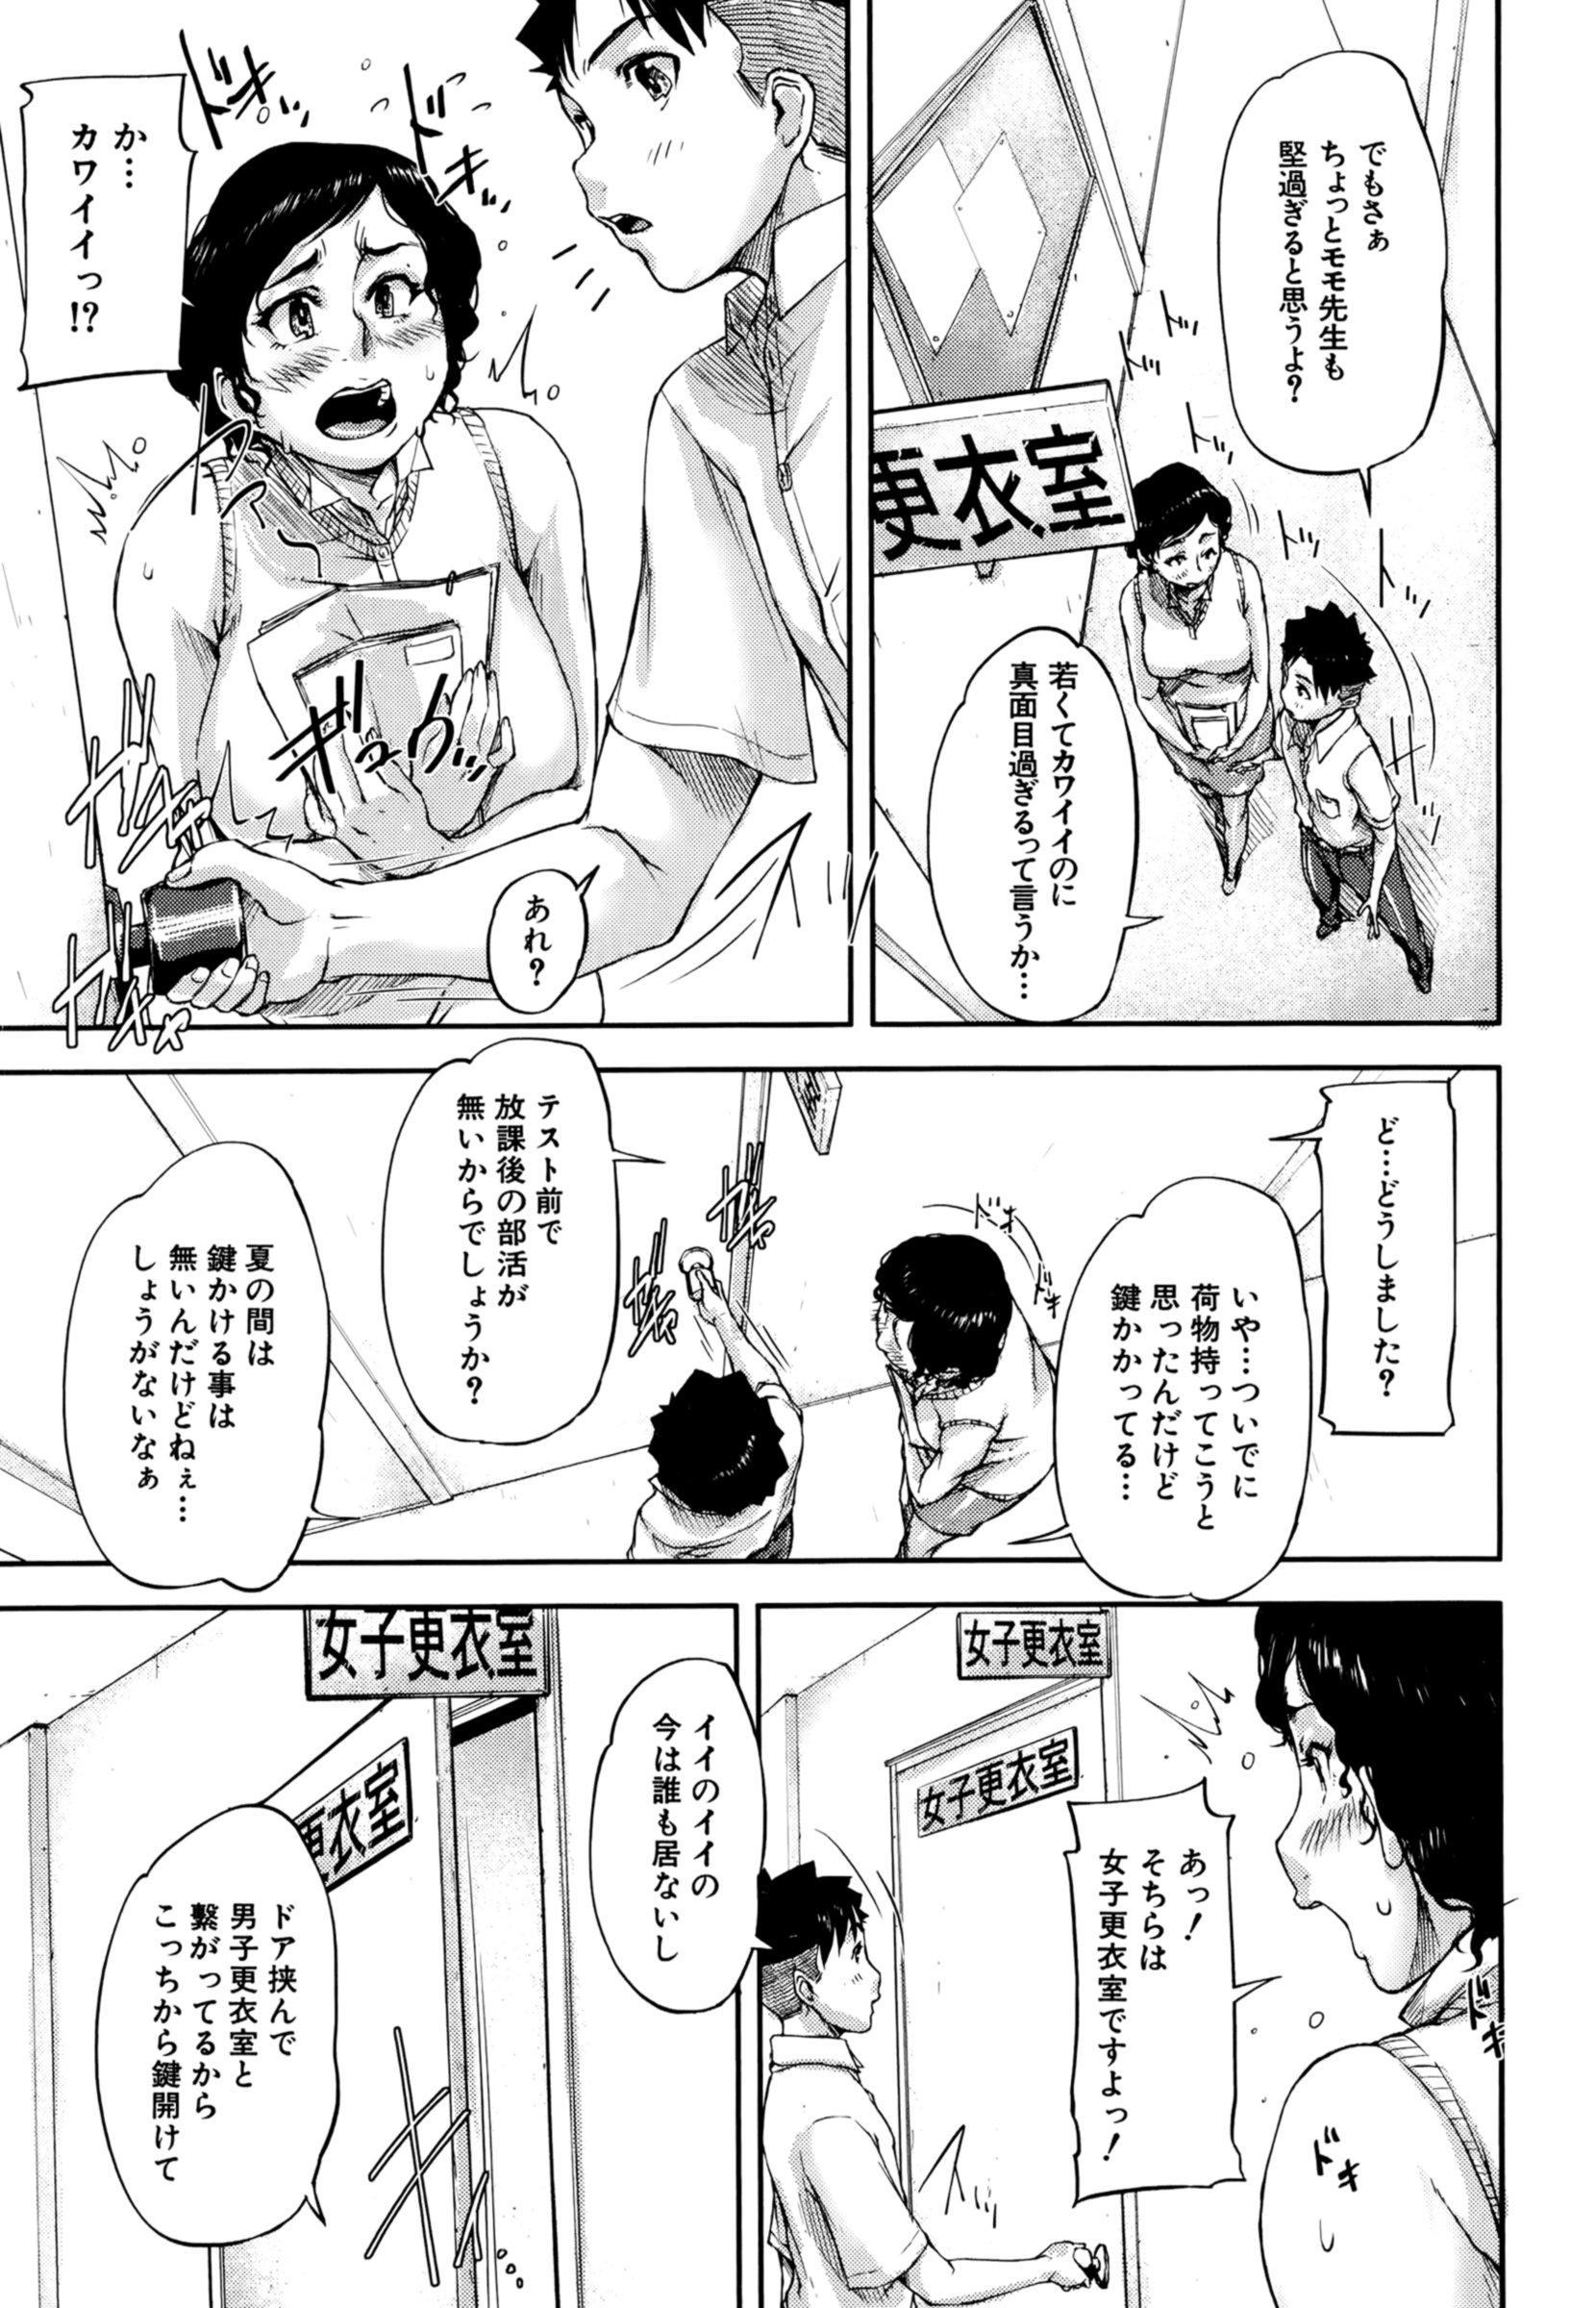 We are the Chijo Kyoushi Ch. 1-2 6